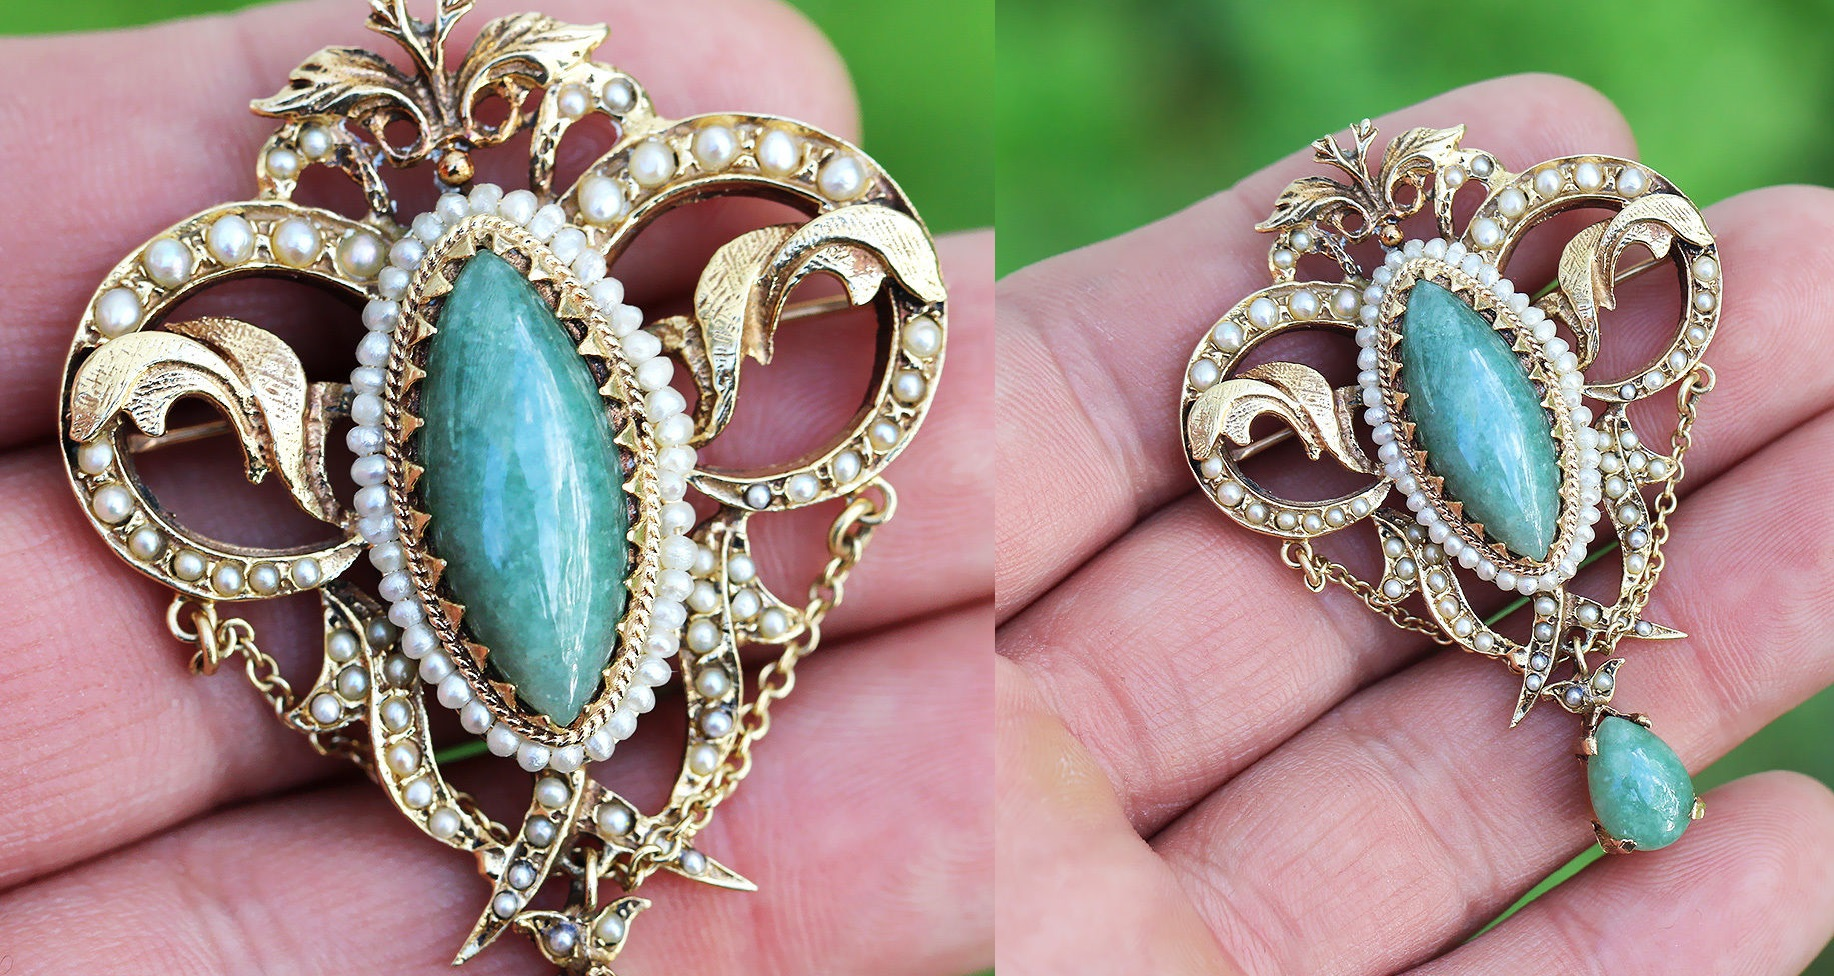 Vintage Jade Brooch Pendant with Seed Pearls in 14kt Yellow Gold